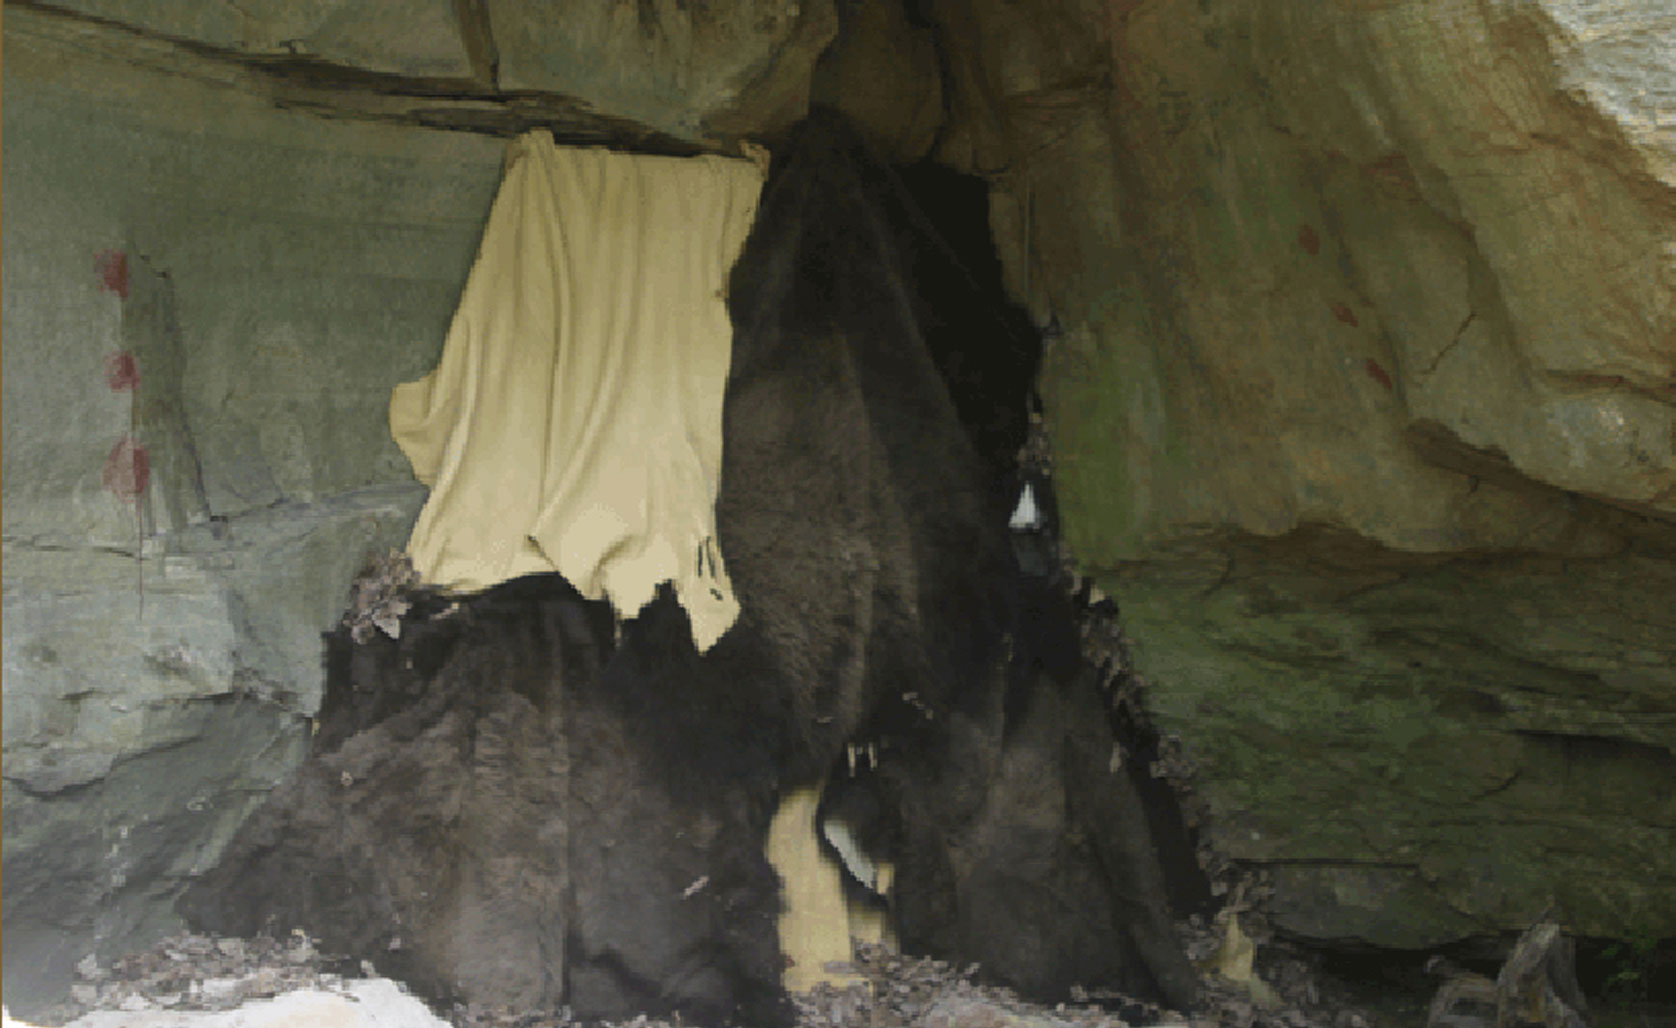 Wall of hides under a rock overhang